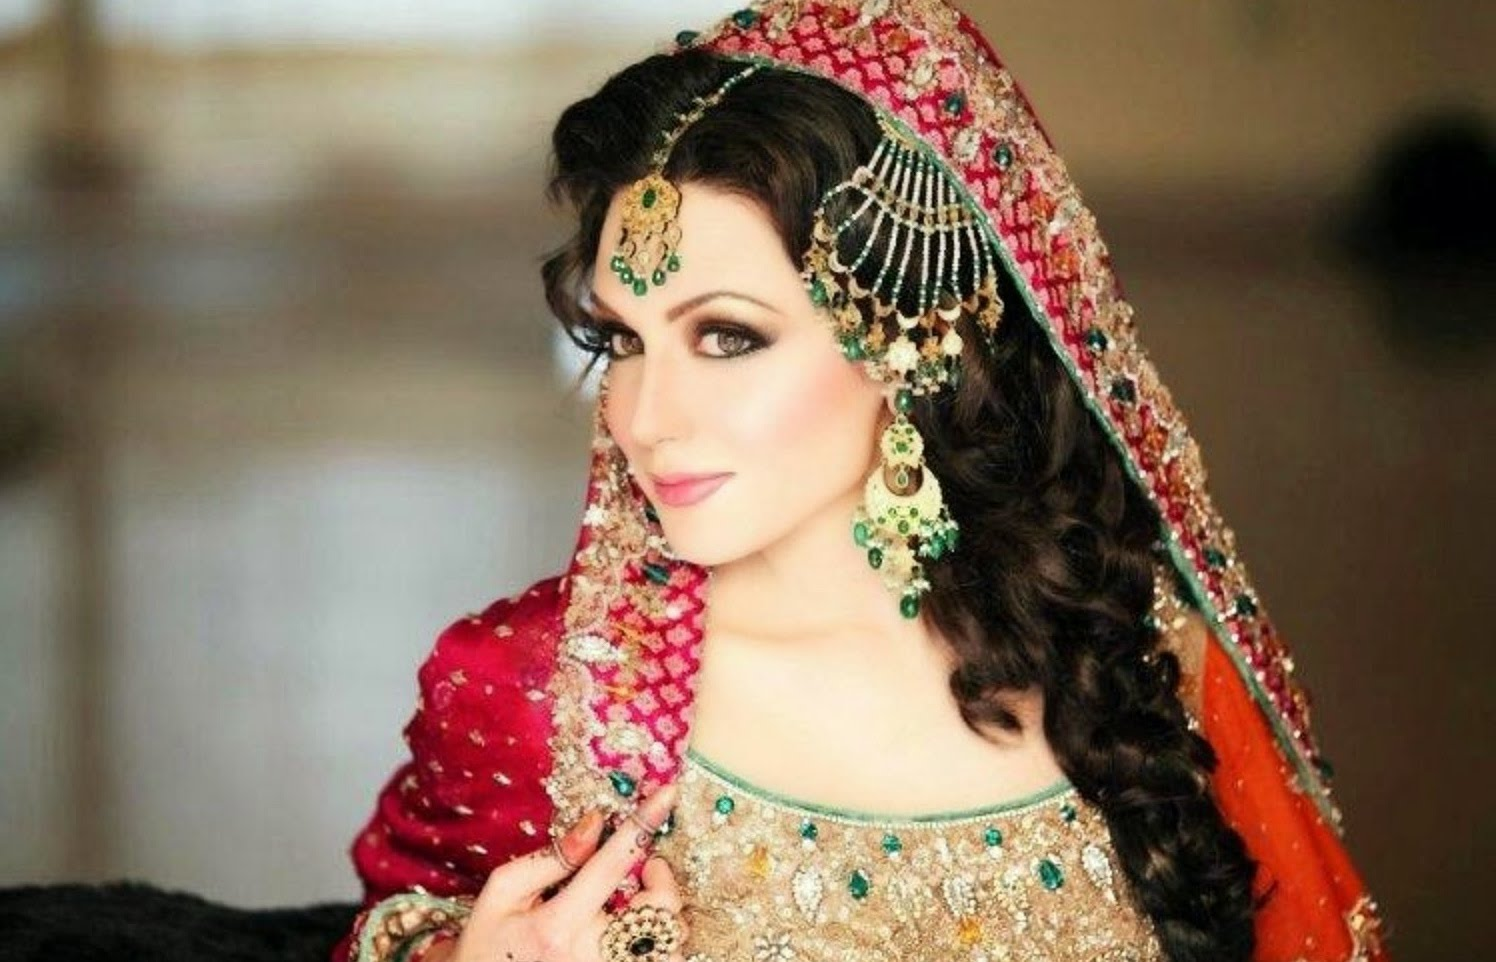 Top 10 Most Beautiful Pakistani Women In the World - Youme